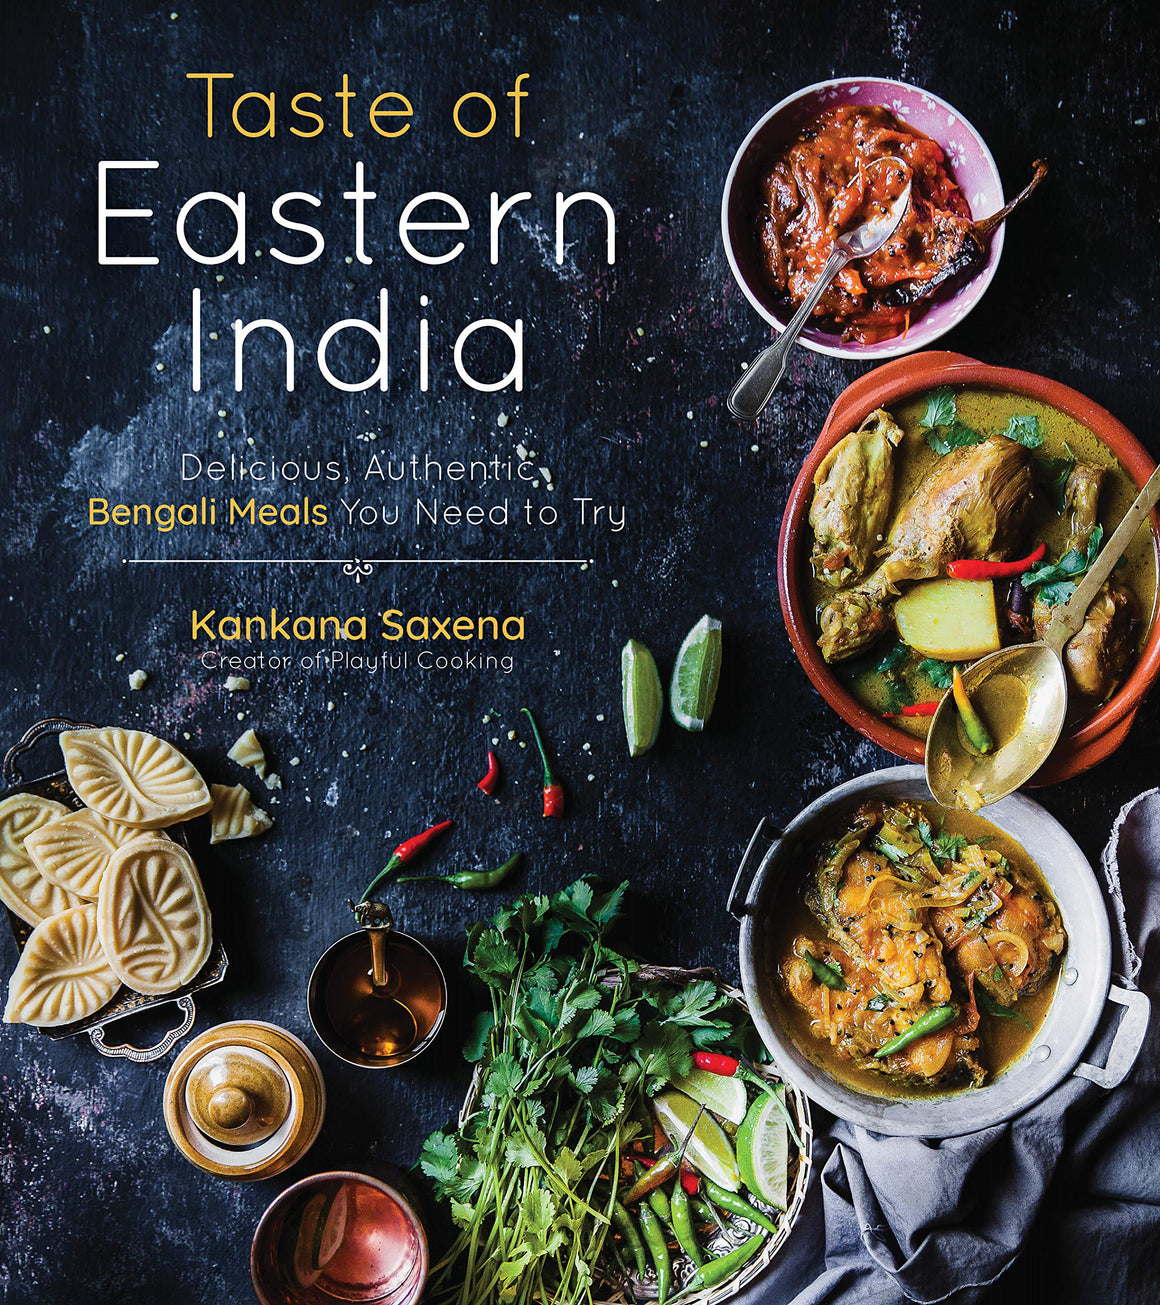 Kankana Saxena. Taste of Eastern India: Delicious, Authentic Bengali Meals You Need to Try.